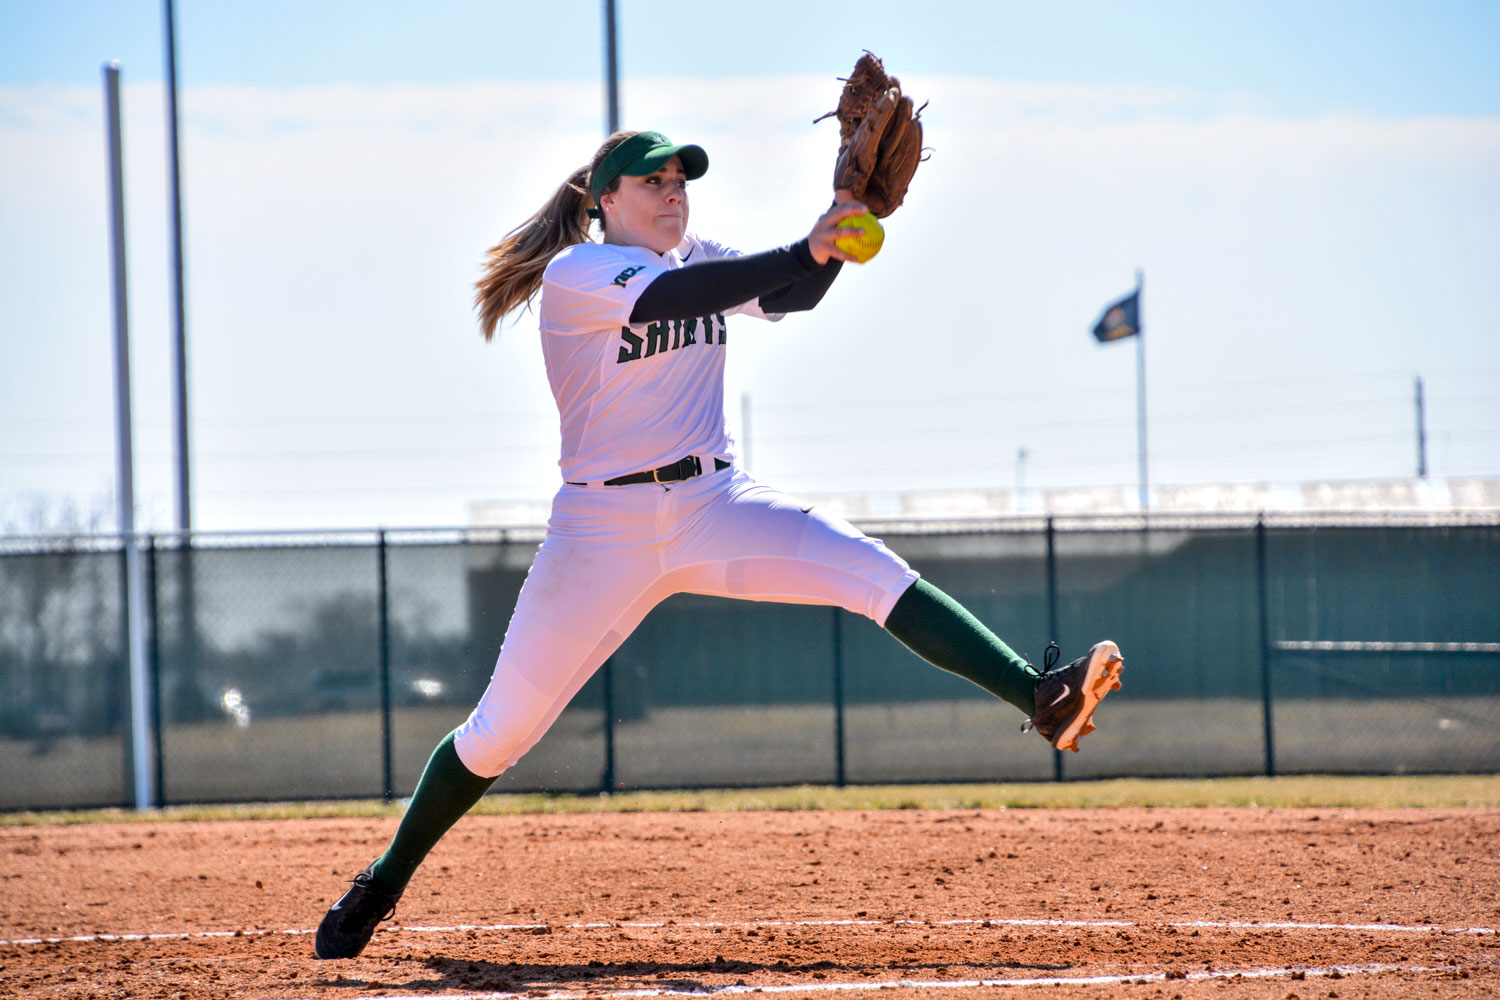 The Seward County Community College softball team played two matches against Pratt Community College on March 1, winning both. The Lady Saints are currently 2-9 overall but 2-0 in conference play.